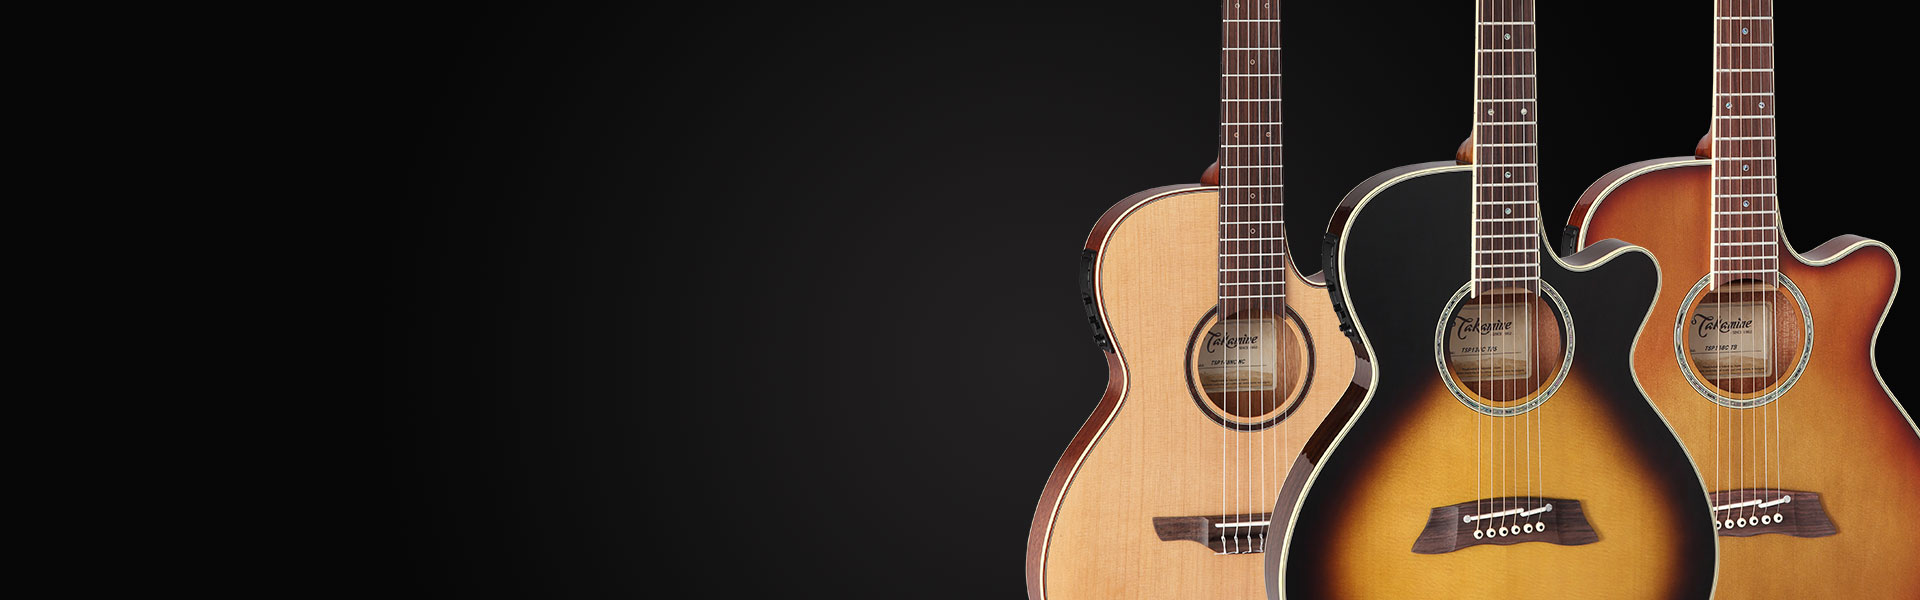 Takamine Thinline Series